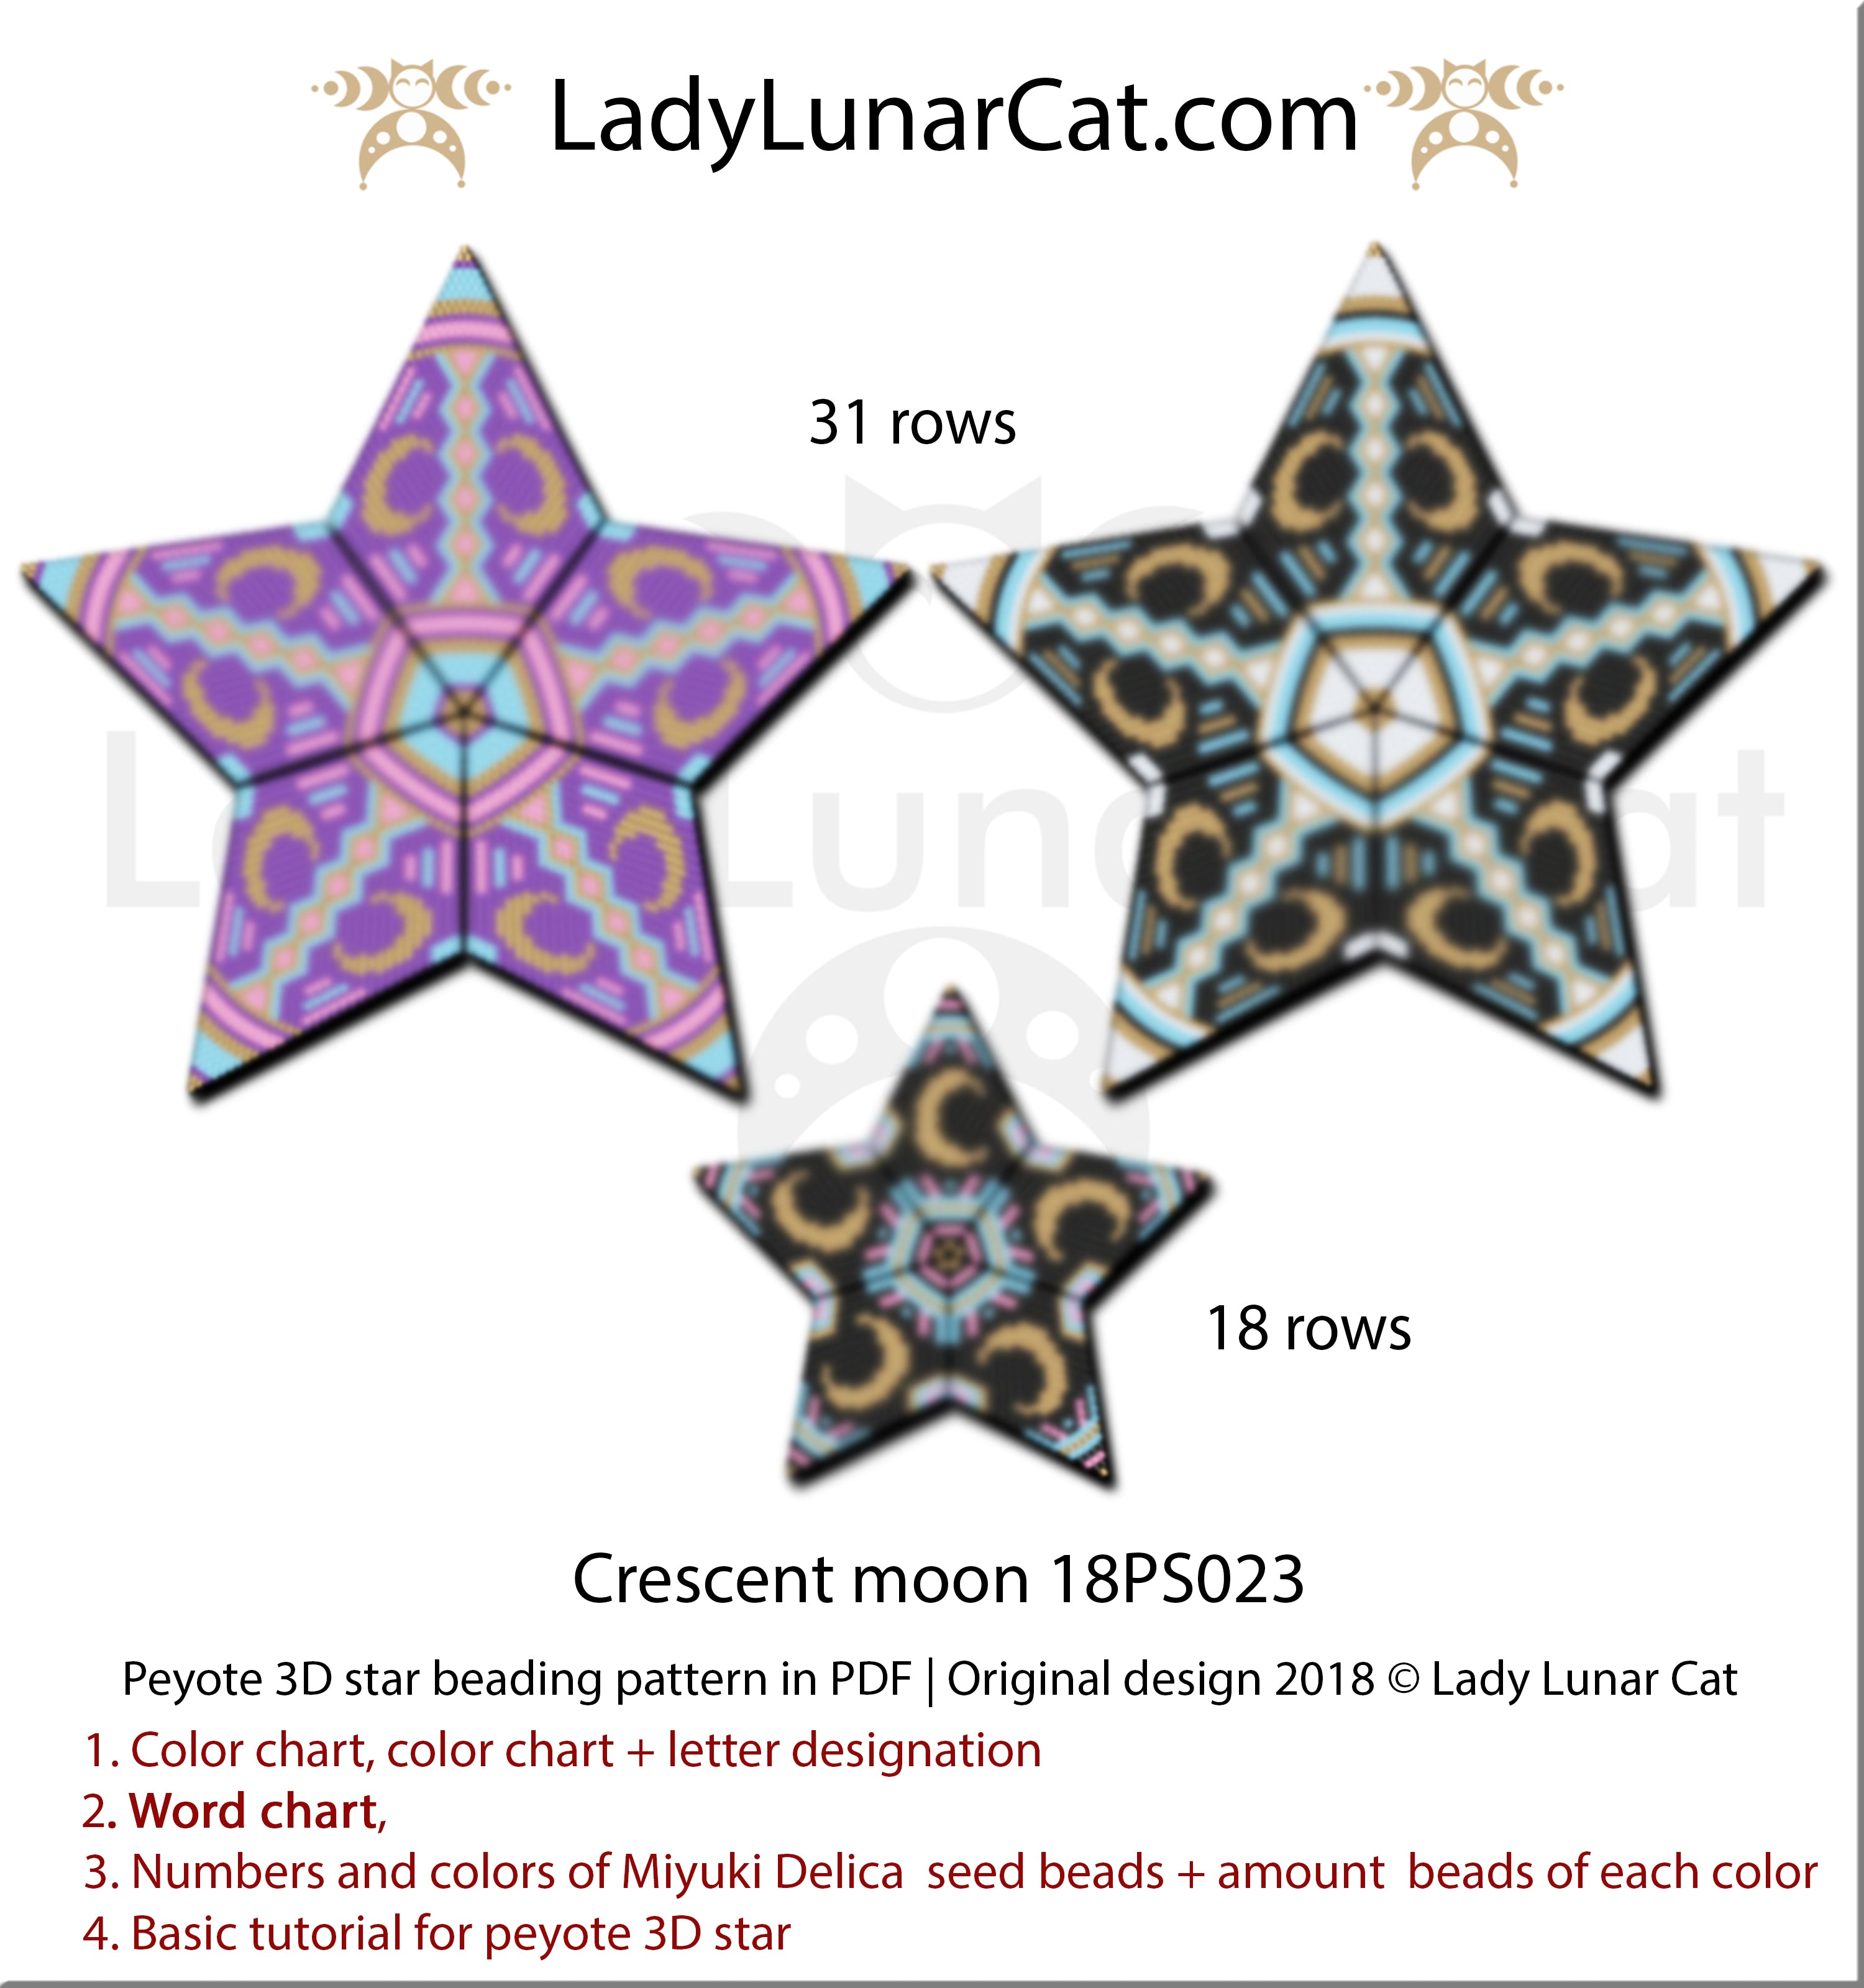 Peyote star patterns for beading Crescent moon by Lady Lunar Cat